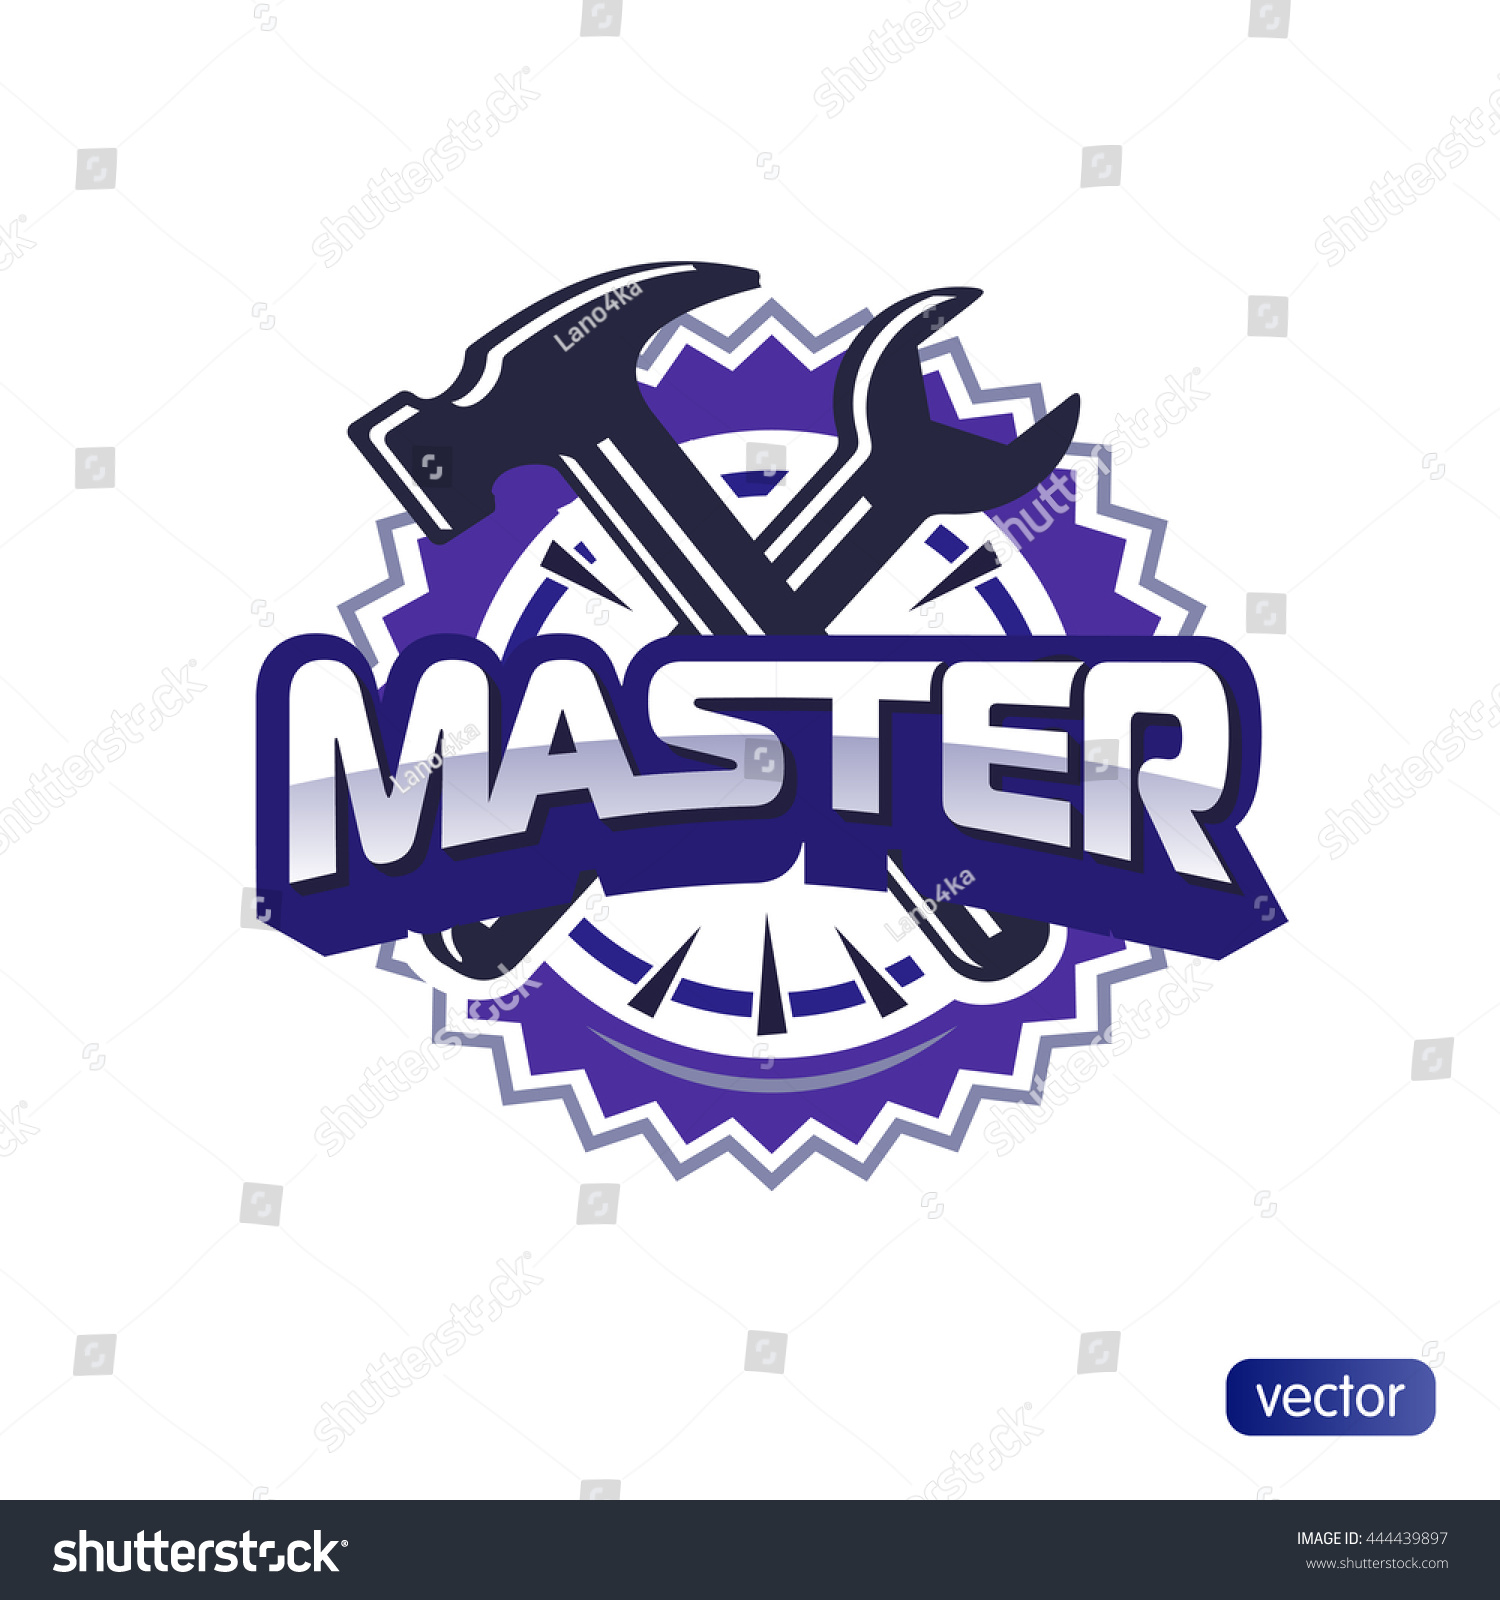 Logo master lettering brand symbol service stock vector 444439897 logo master lettering brand symbol service mark isolated on white background vector illustration biocorpaavc Image collections